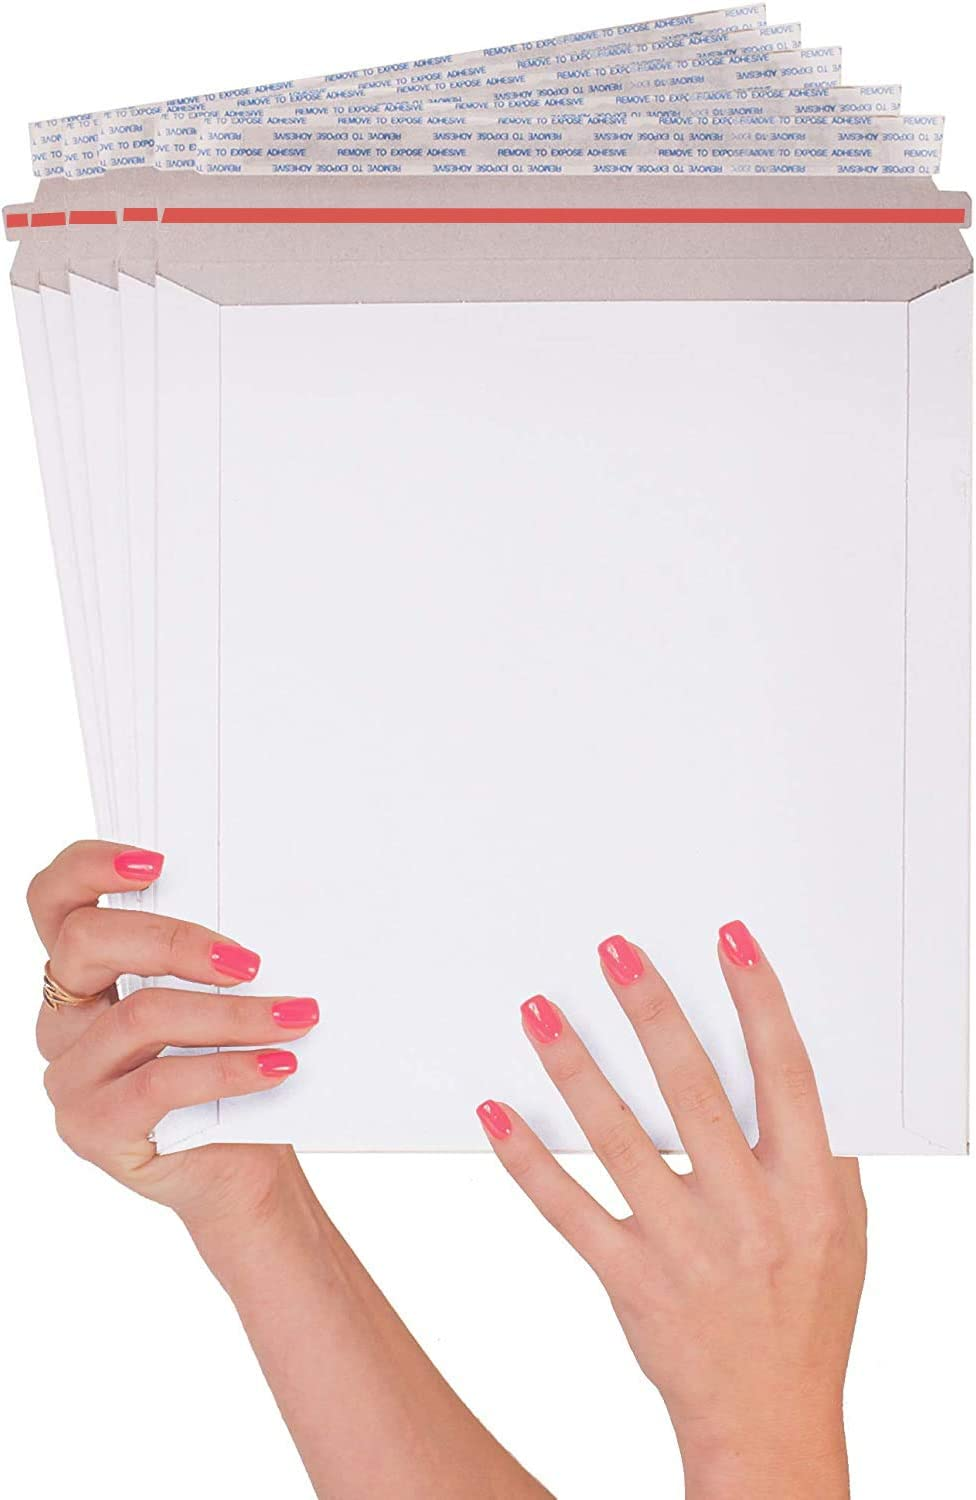 25 Pack Rigid Ranking TOP8 Mailers 9.75 x Large Max 89% OFF Paperboard Envelopes 9 12.25